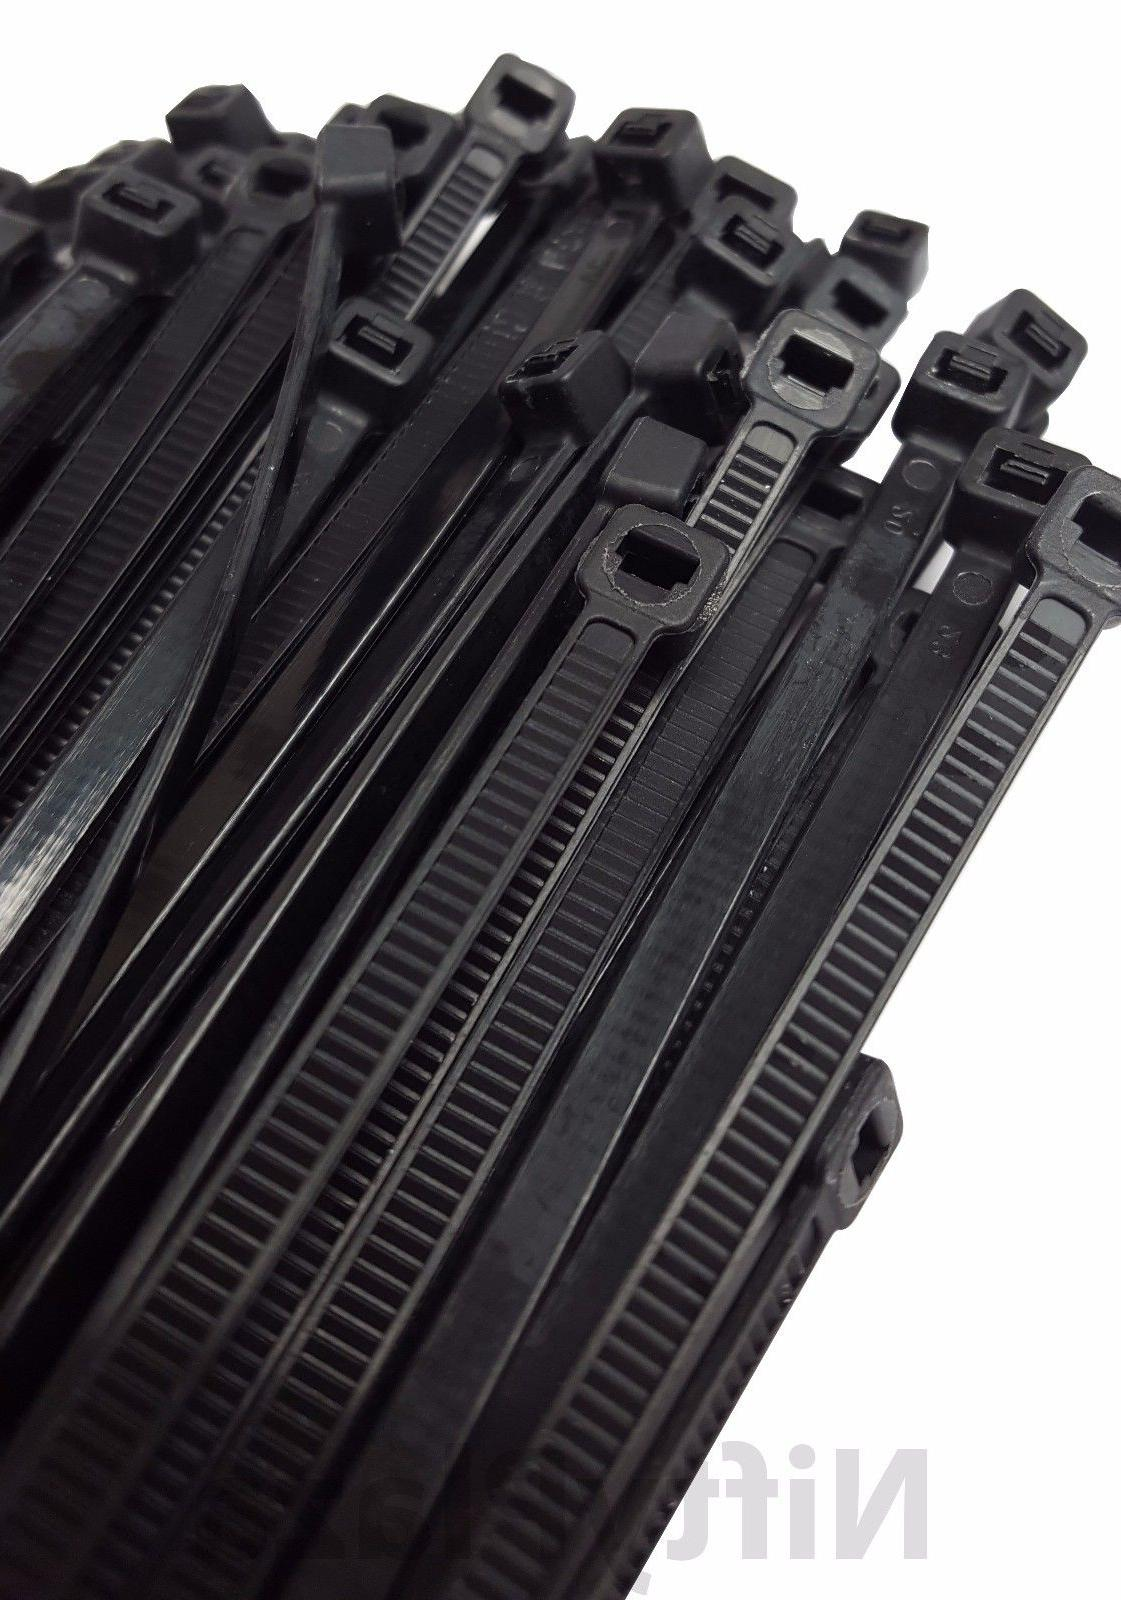 NiftyPlaza 14 Inch Cable Ties - 100 Pack 120 lbs Heavy Duty